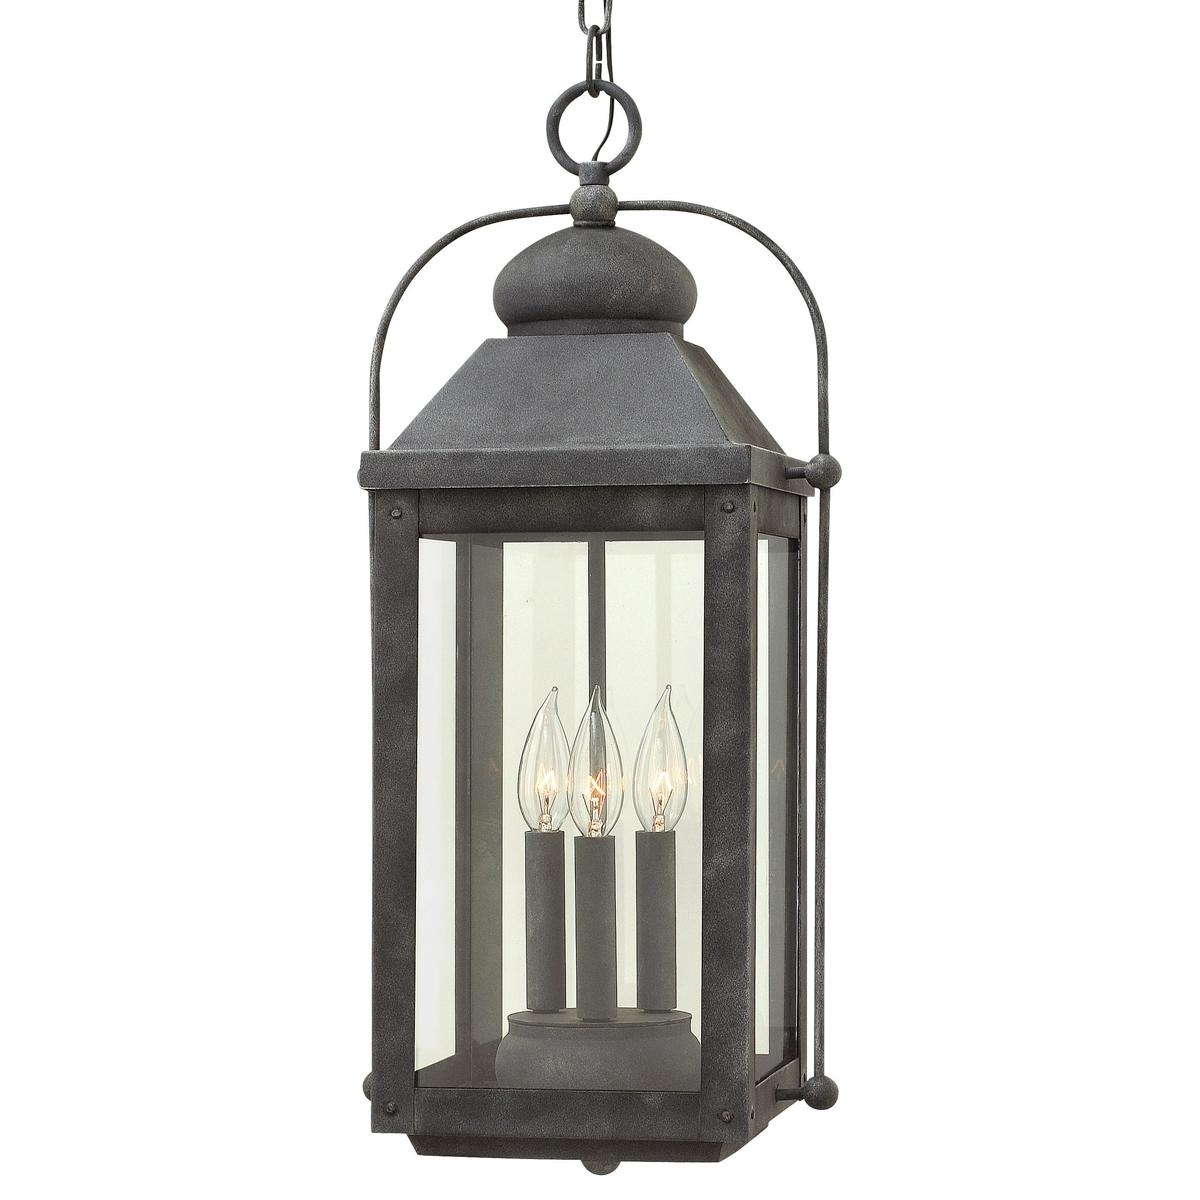 Nostalgic Arched Carriage Hanging Outdoor Lantern | Lights, Lantern In Outdoor Hanging Pool Lights (#12 of 15)